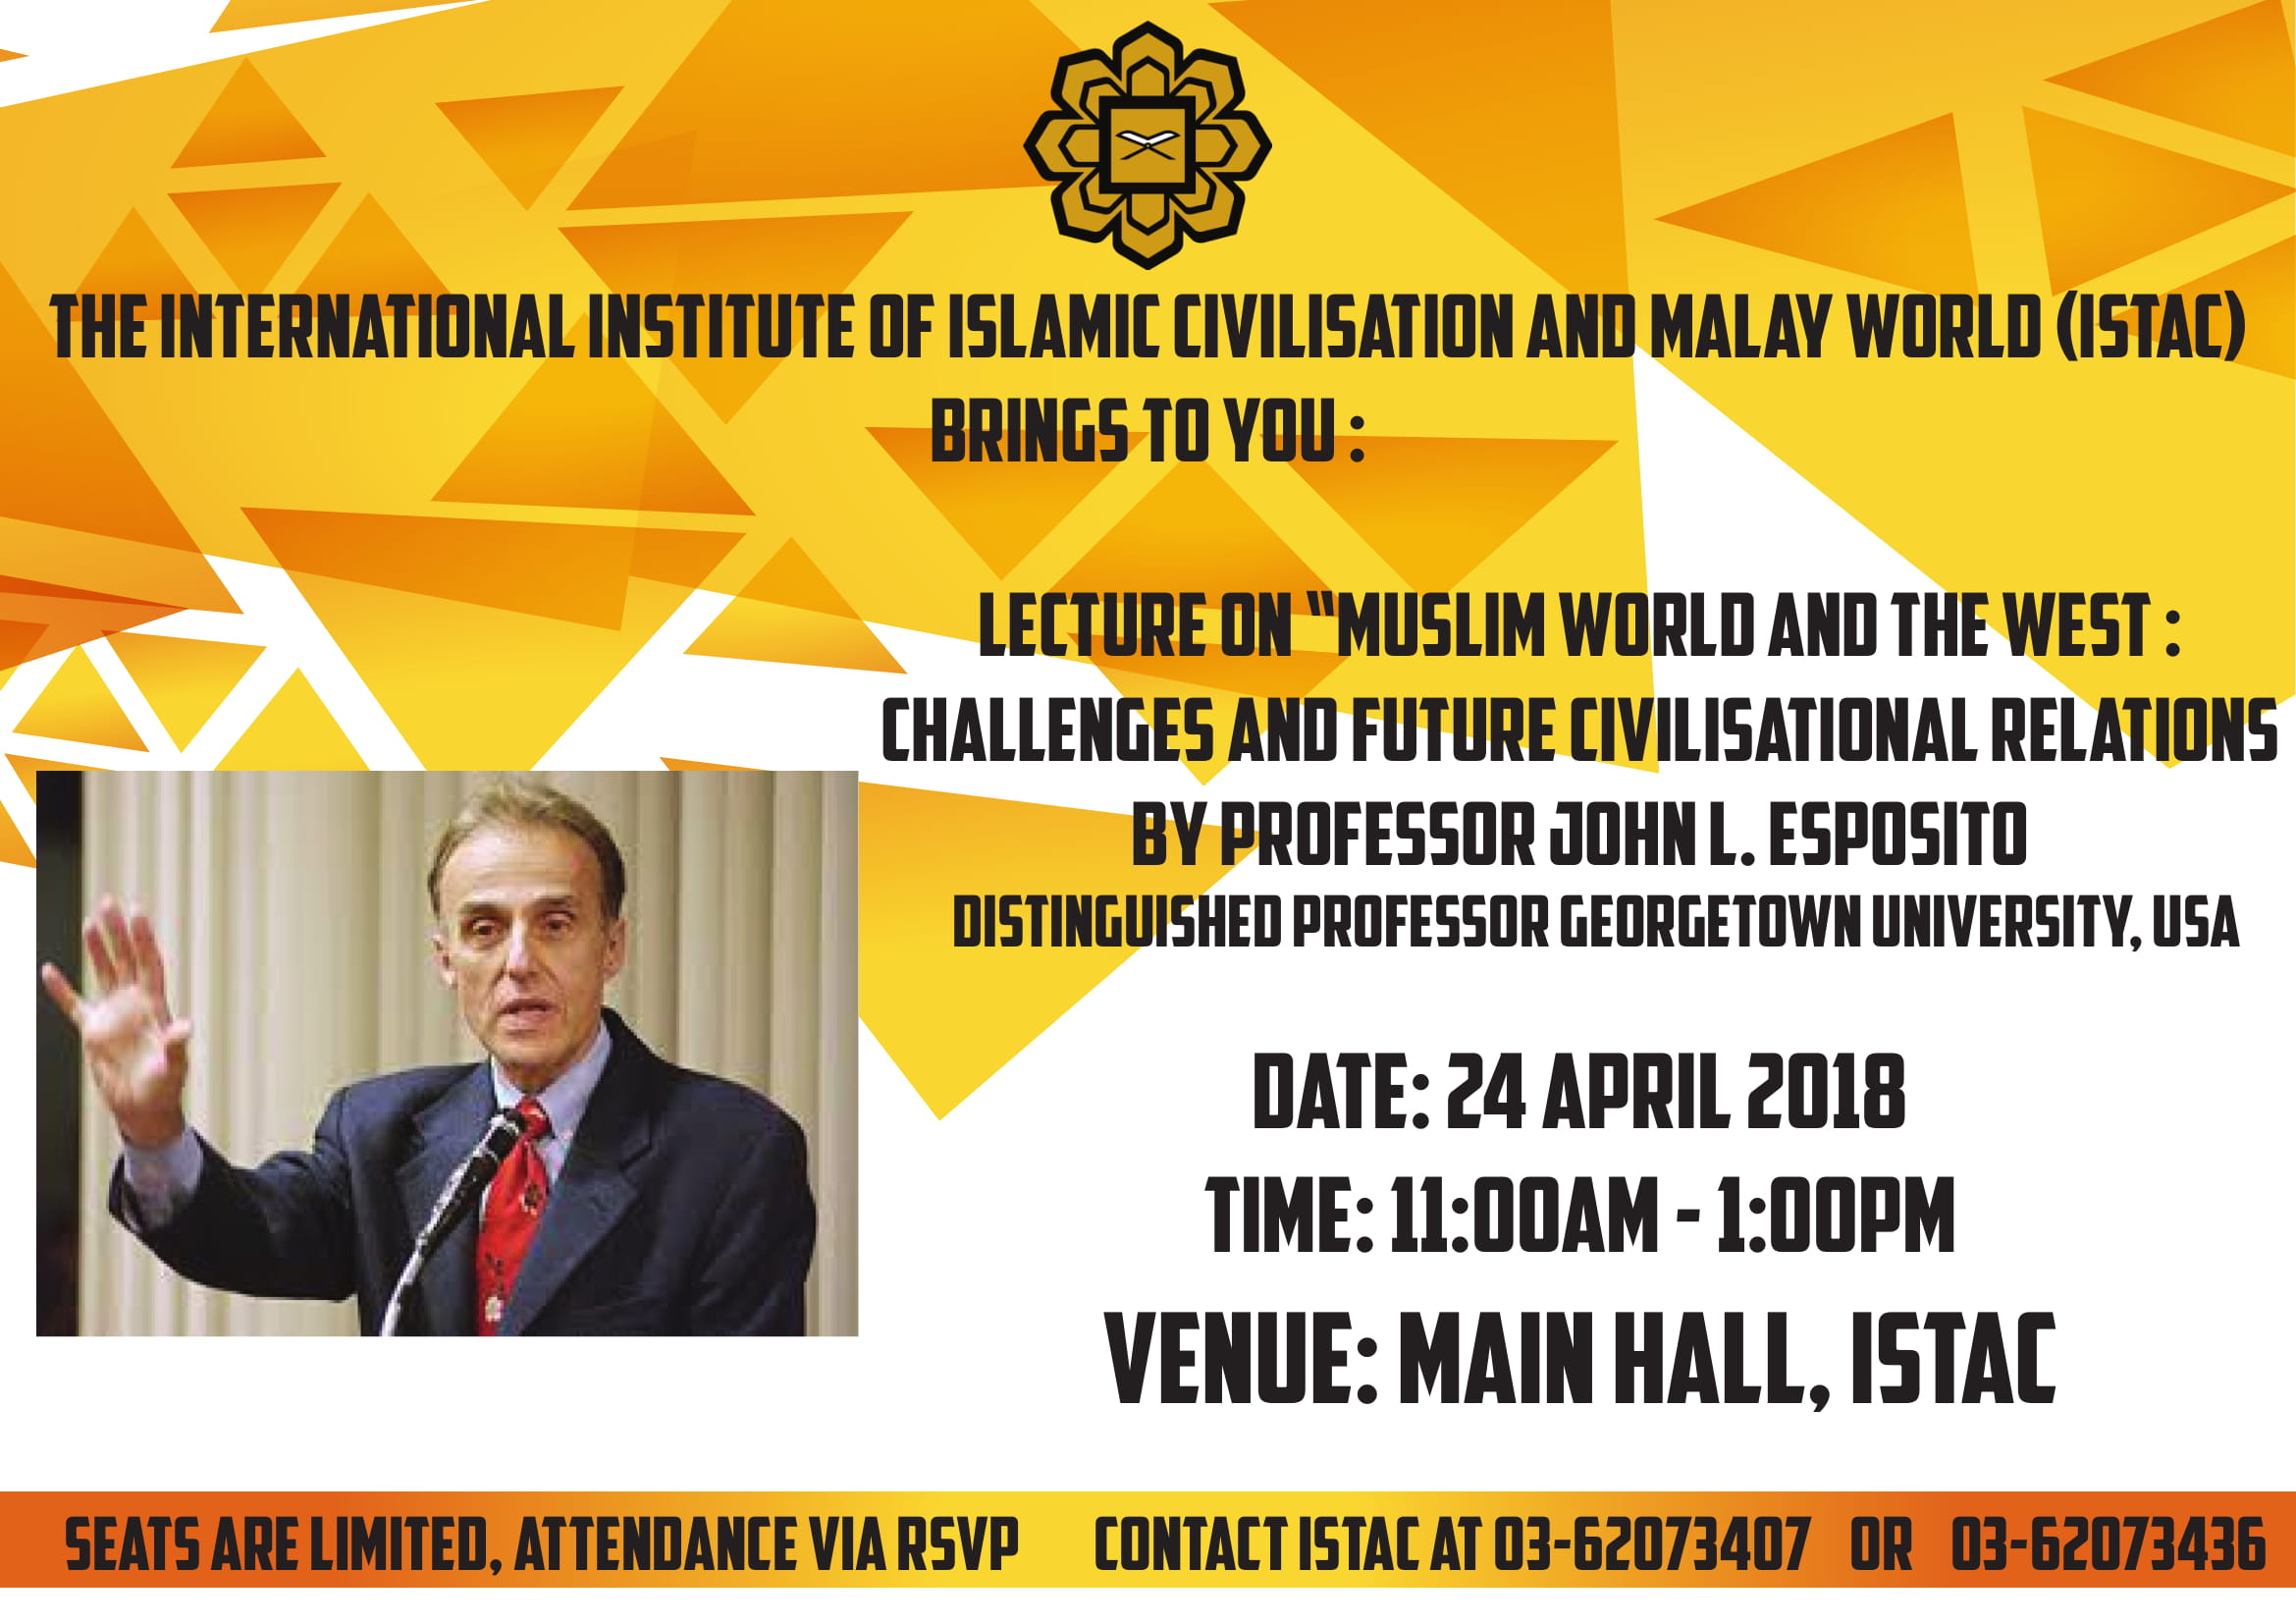 """Lecture On """" Muslim World And The West: Challenges And Future Civilisational Relations By Prof. John L. Esposito"""